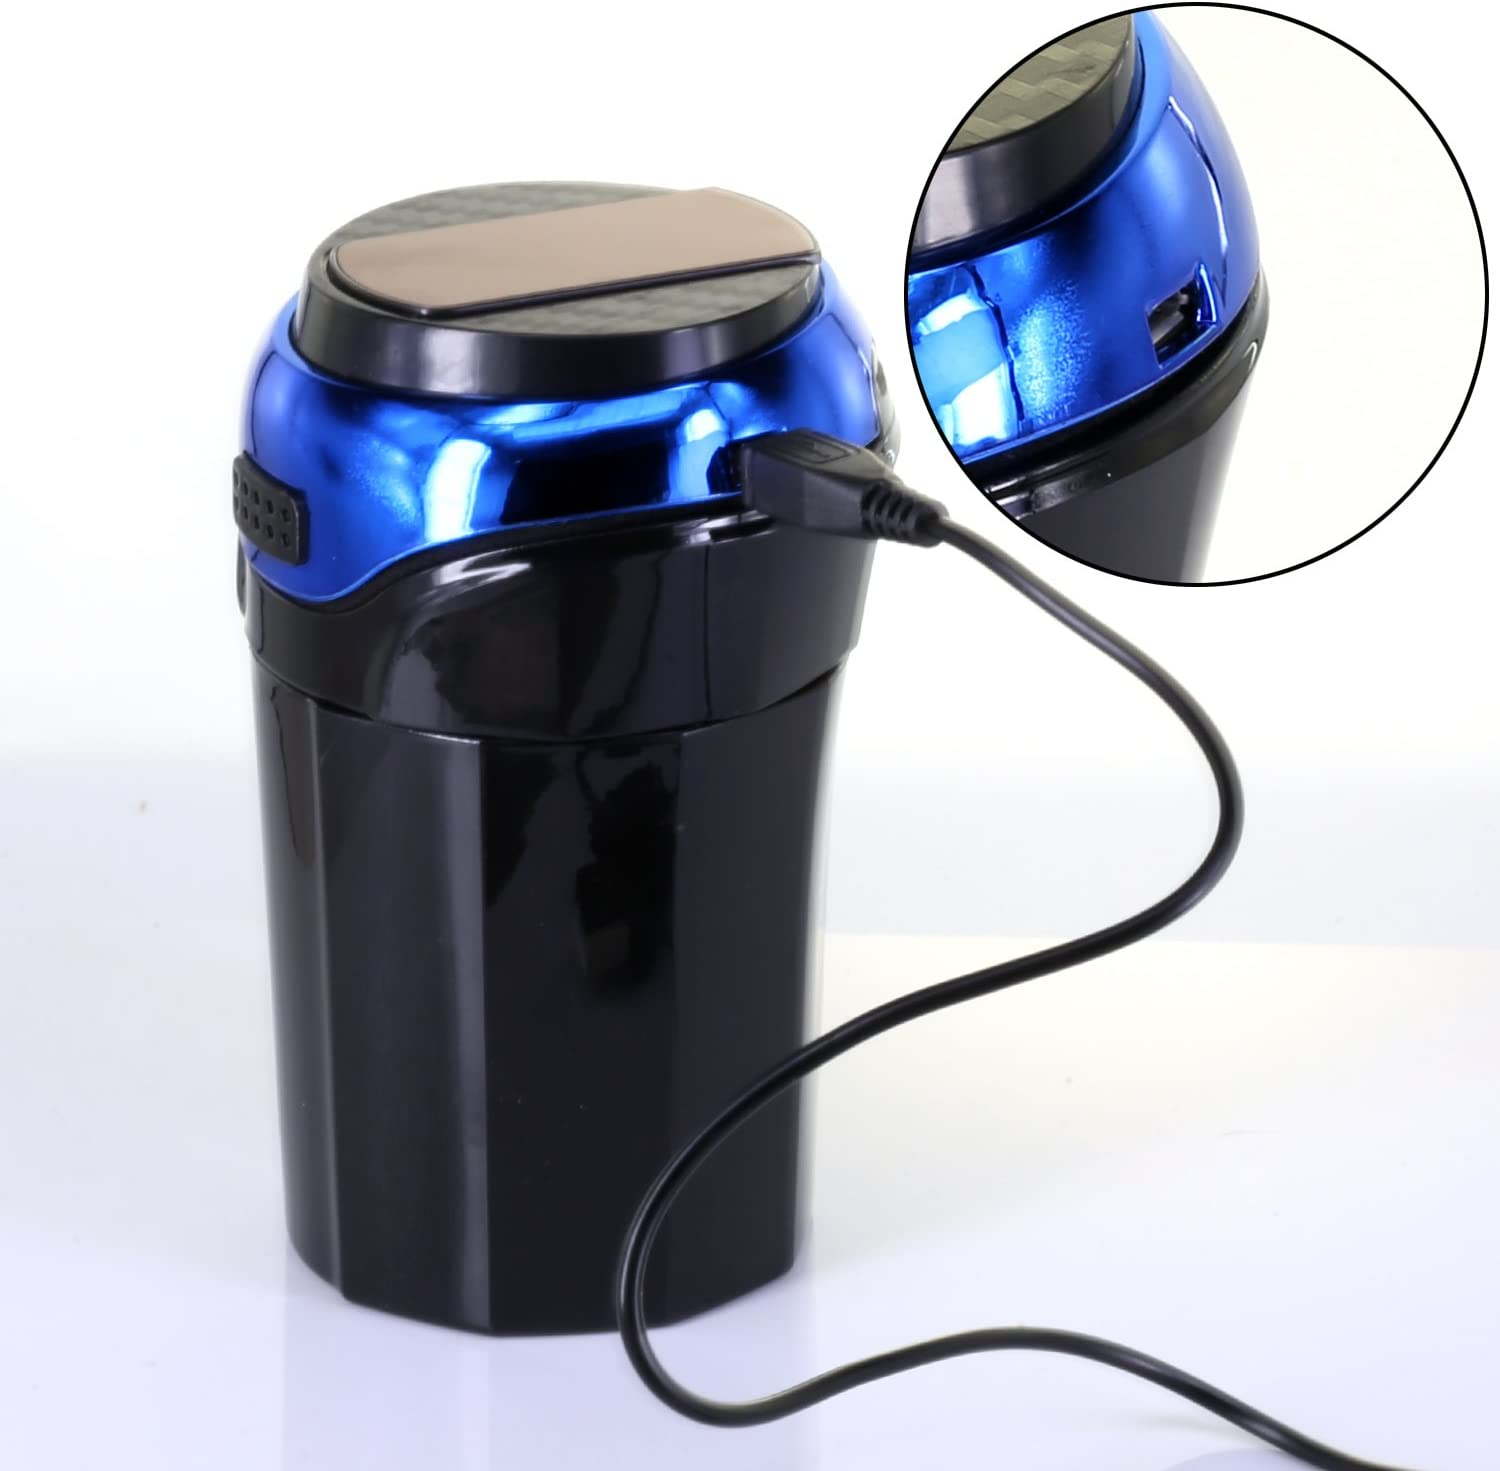 AUTLY Car Ashtray Cup with Detachable smokeless Lighter and Blue LED Light USB Charging car Ashtray Ashtray with lid Blue